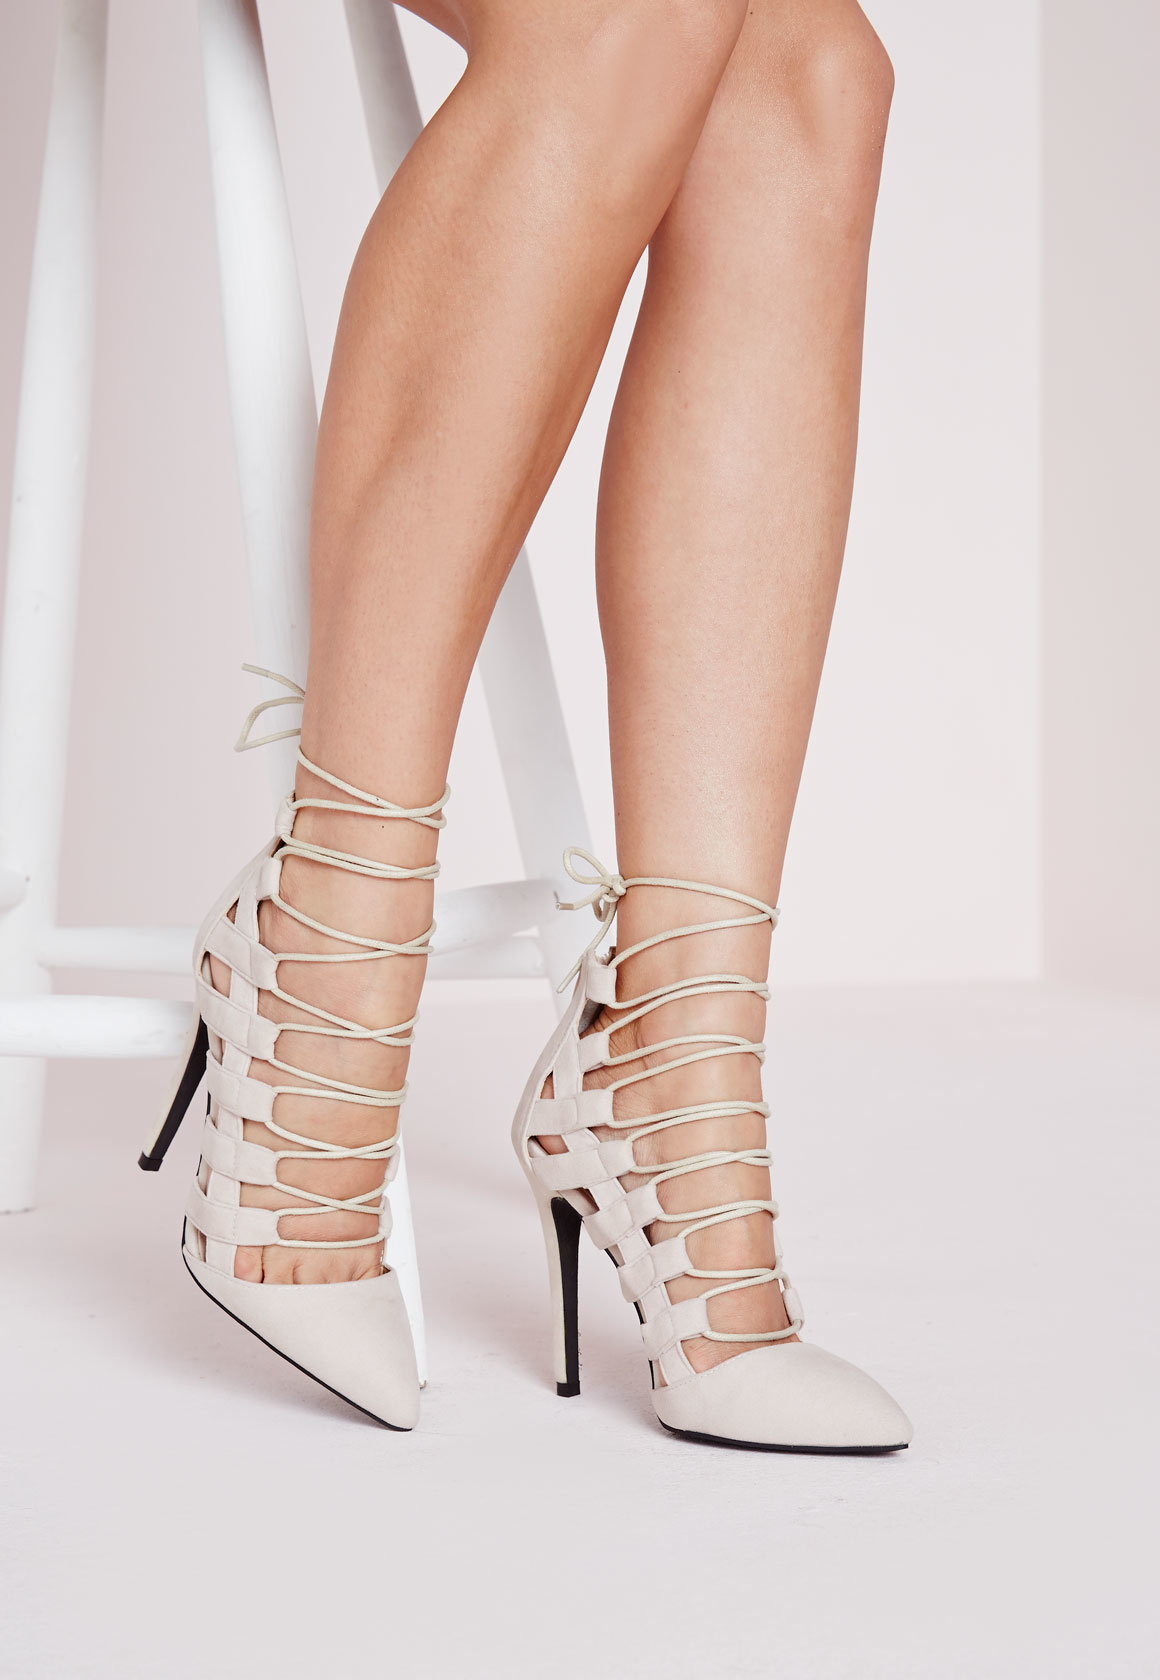 Lyst - Missguided Pointed Toe Lace Up Court Shoes Nude in Natural